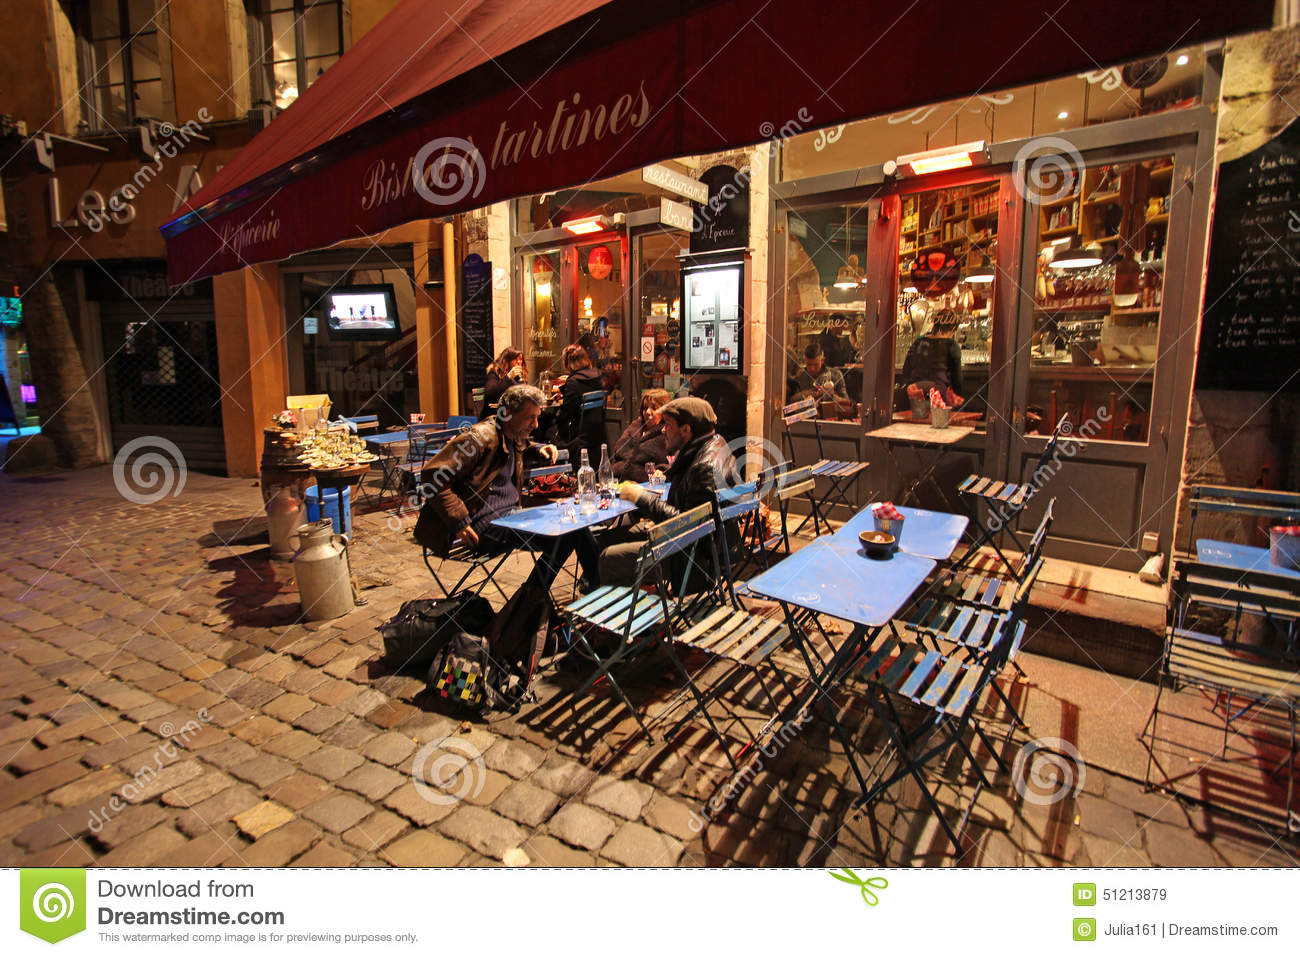 lyon restaurants by night france editorial stock image image 51213879. Black Bedroom Furniture Sets. Home Design Ideas